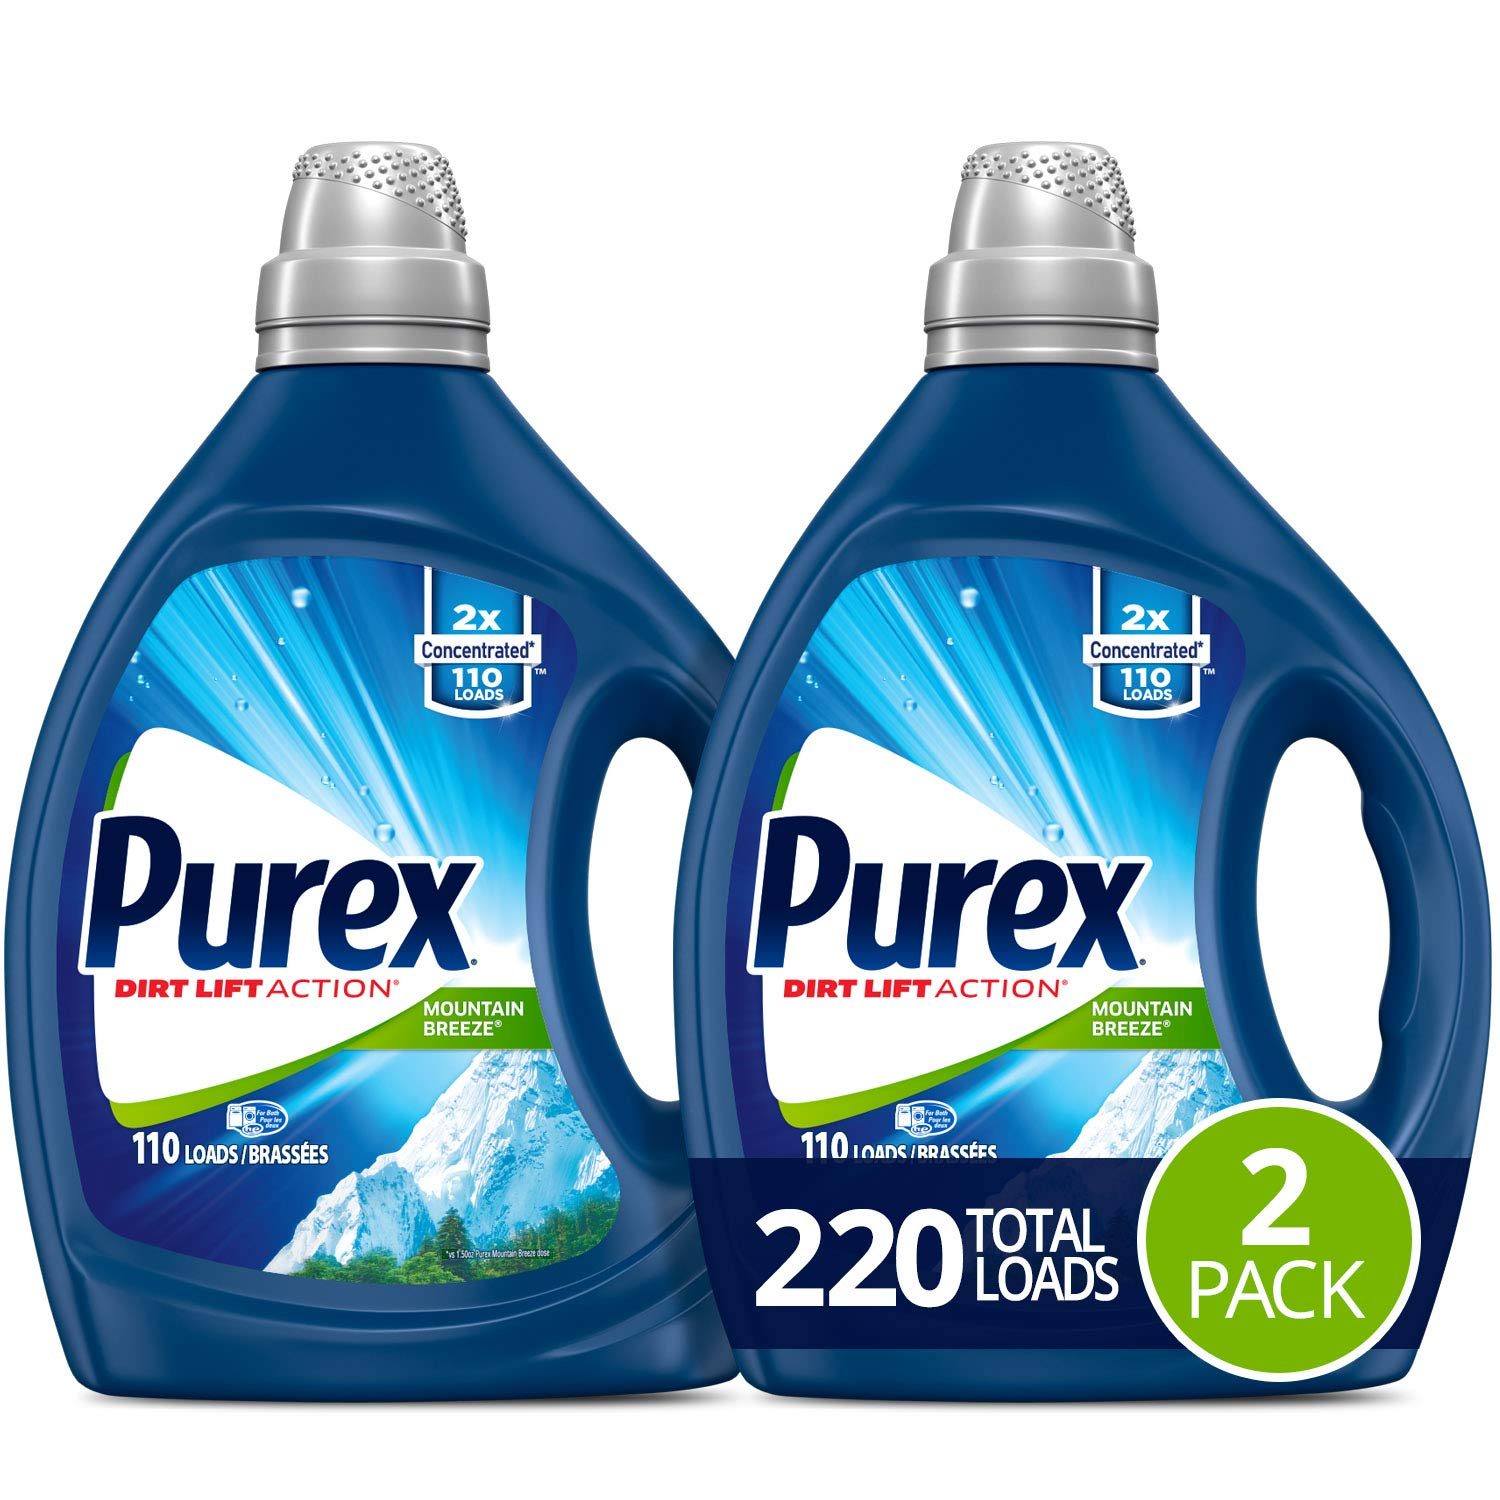 Purex Liquid Laundry Detergent, Mountain Breeze, 2X Concentrated, 2Count, 220 Total Loads by Purex